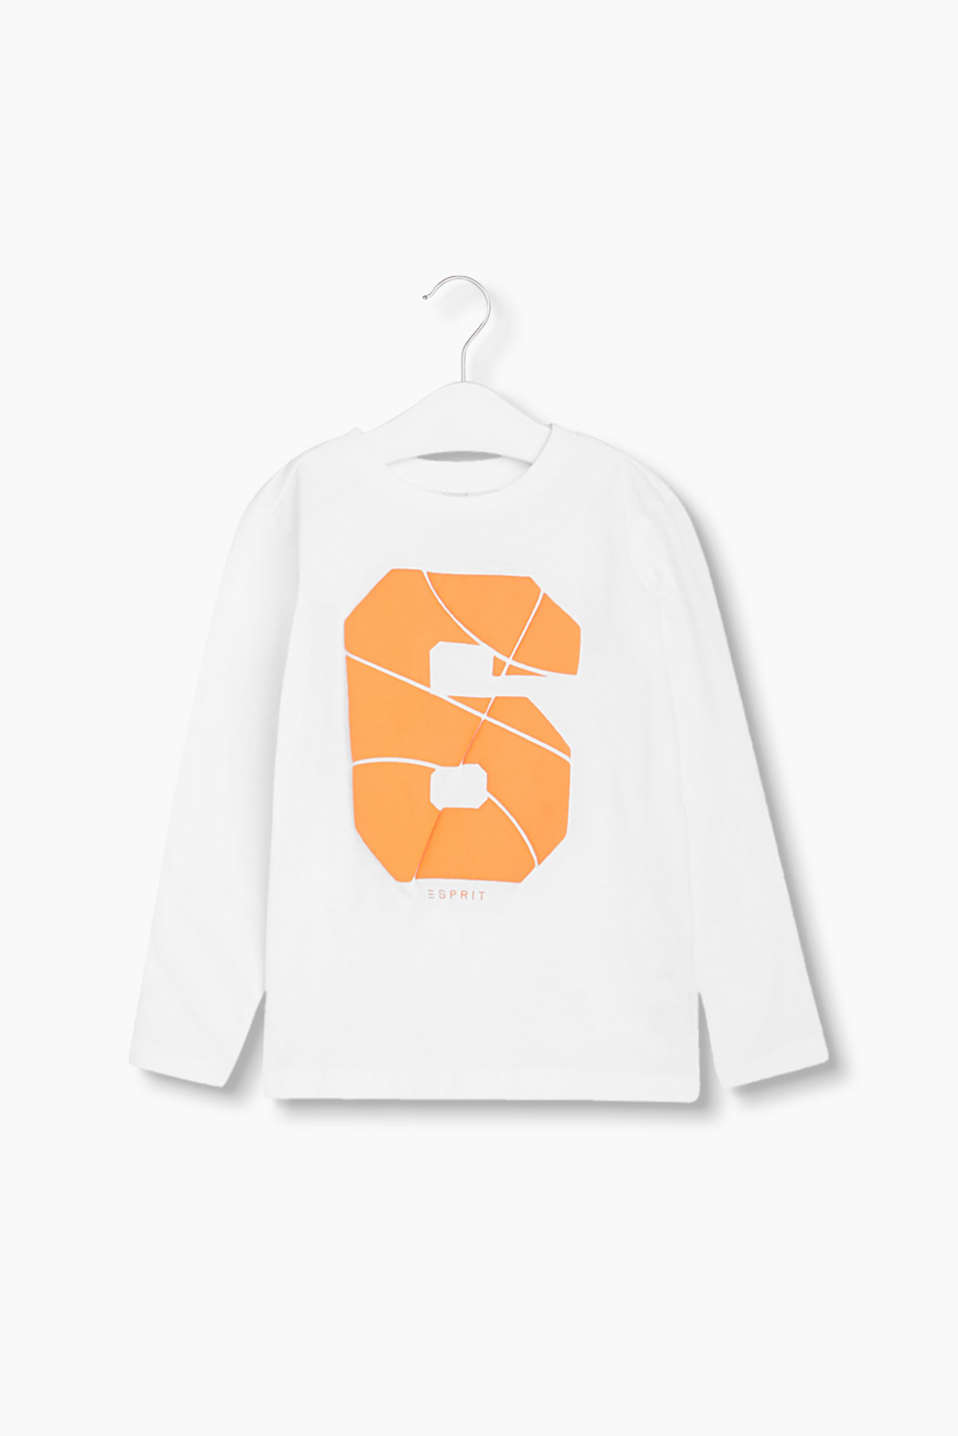 Long sleeve cotton-jersey top with large printed numbers in 3-d effect foam